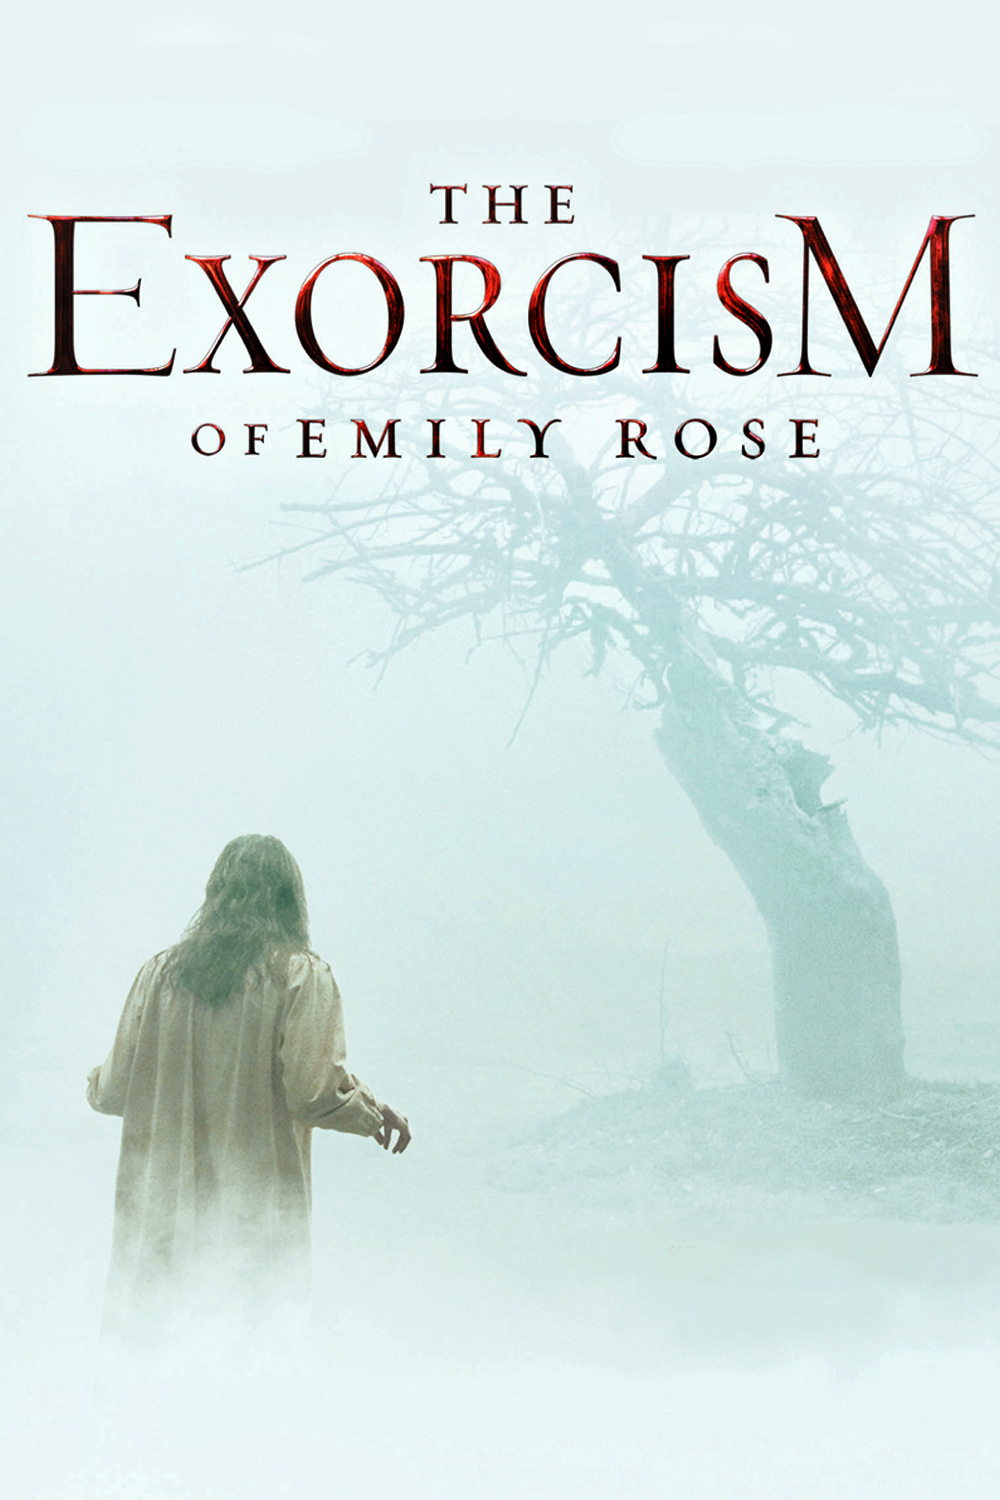 Emily Rose True Story of Anneliese Michel Exorcism - Real Story